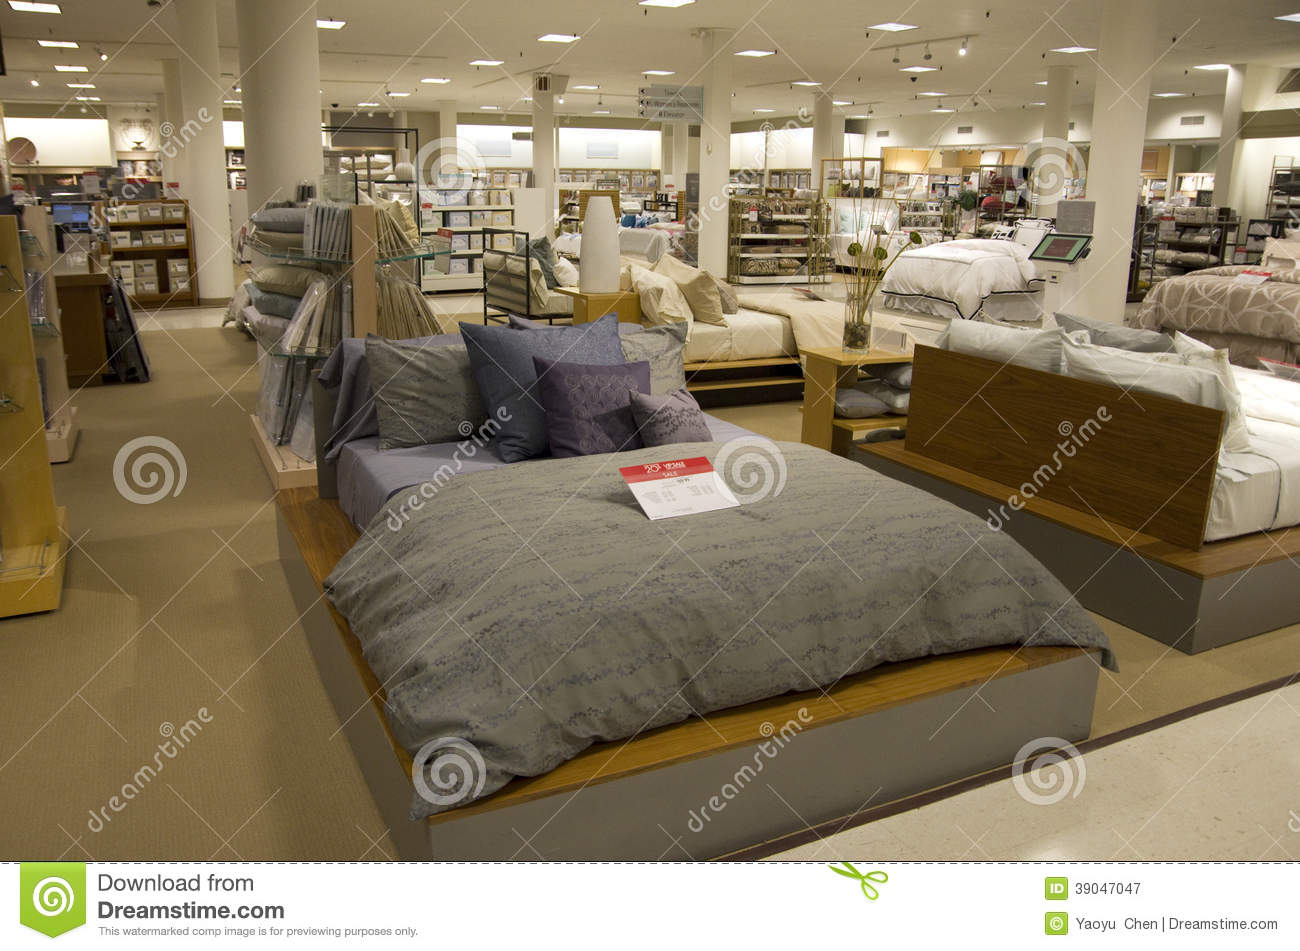 Bedding Home Goods